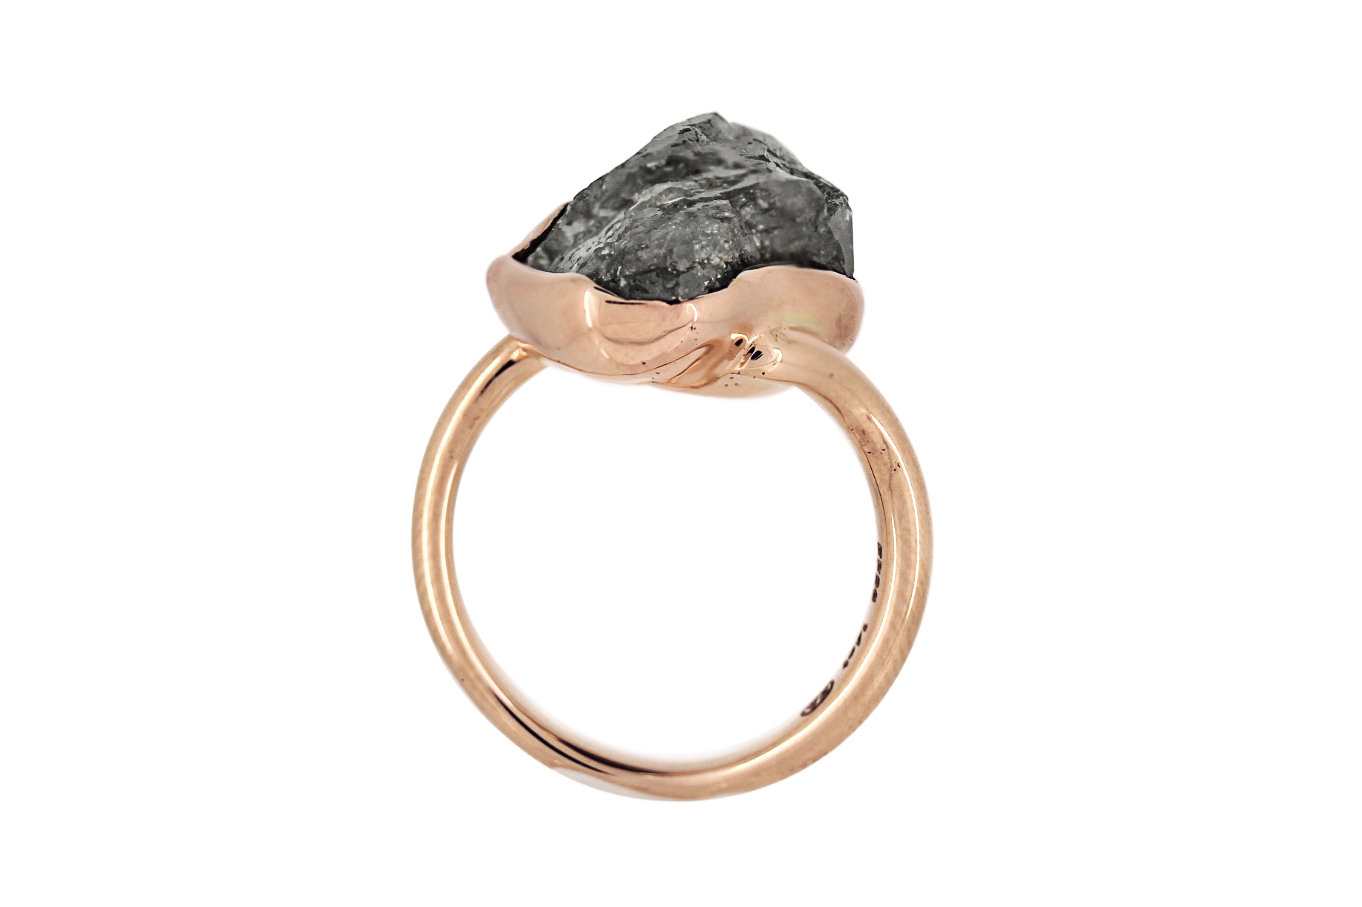 7th WONDER in 14ct Rose Gold